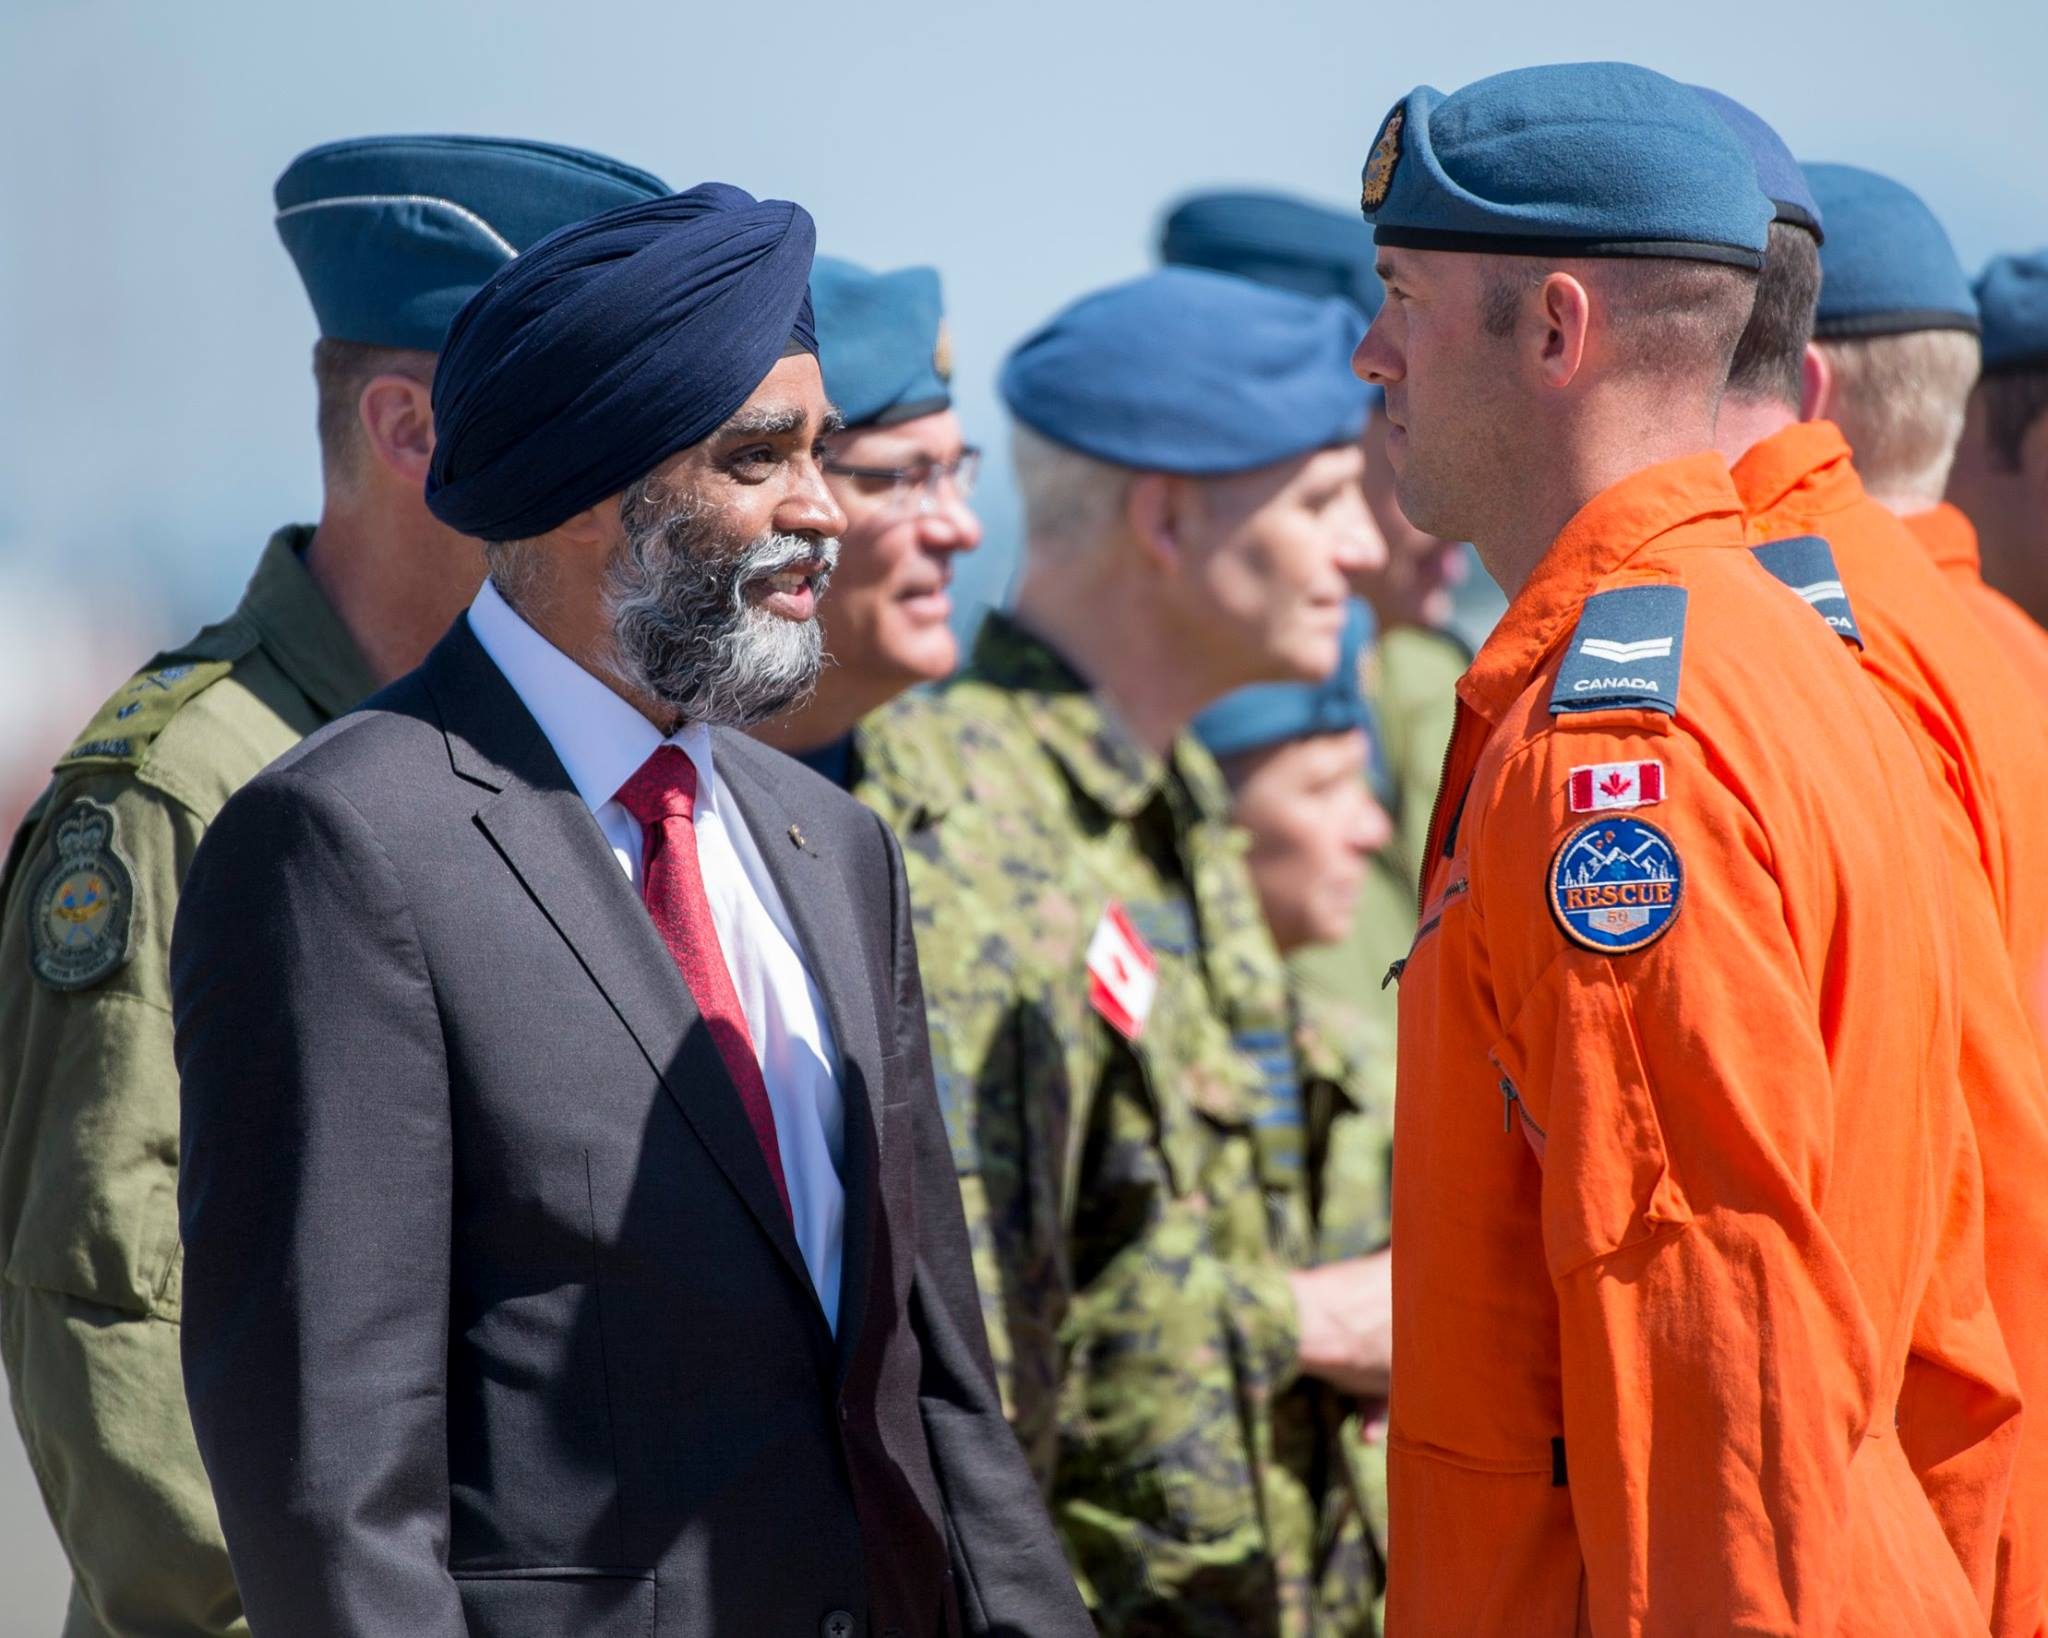 Defence Minister Harjit Sajjan speaks with graduates of Canada's 50th search and rescue technician course at Comox, British Columbia, on July 6, 2017. PHOTO: Master Seaman Roxanne Wood